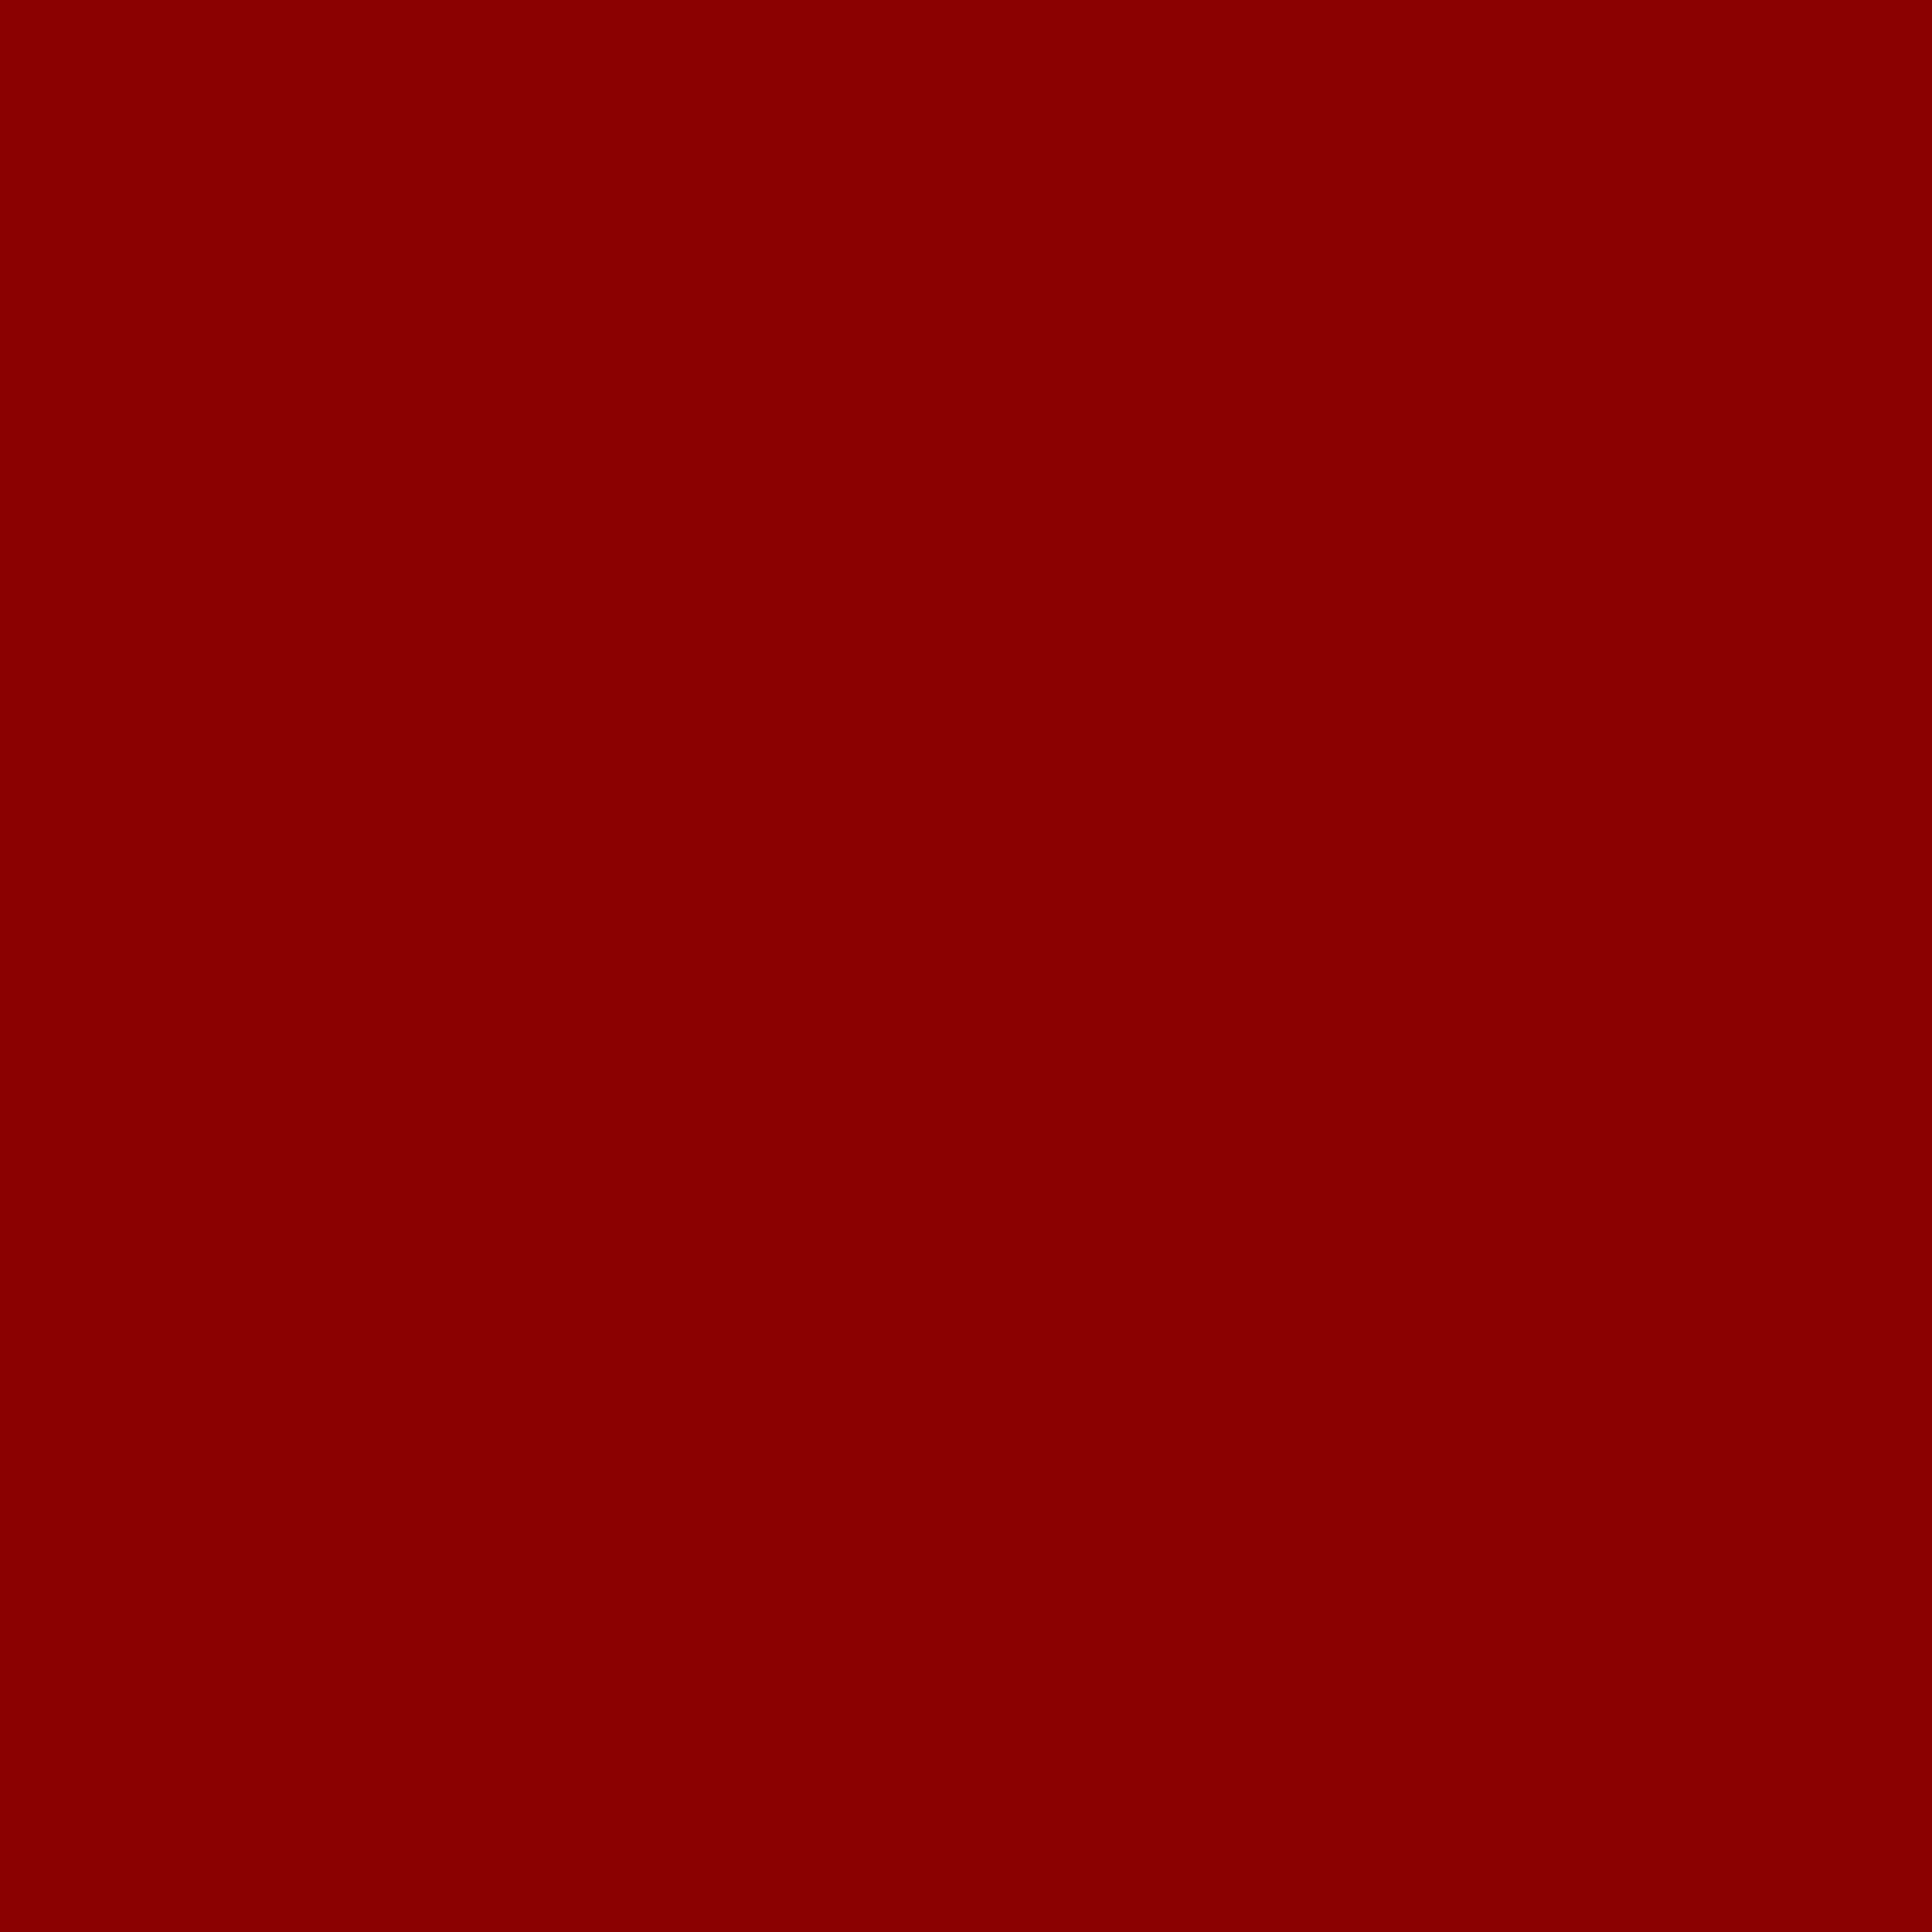 2048x2048 dark red solid color background